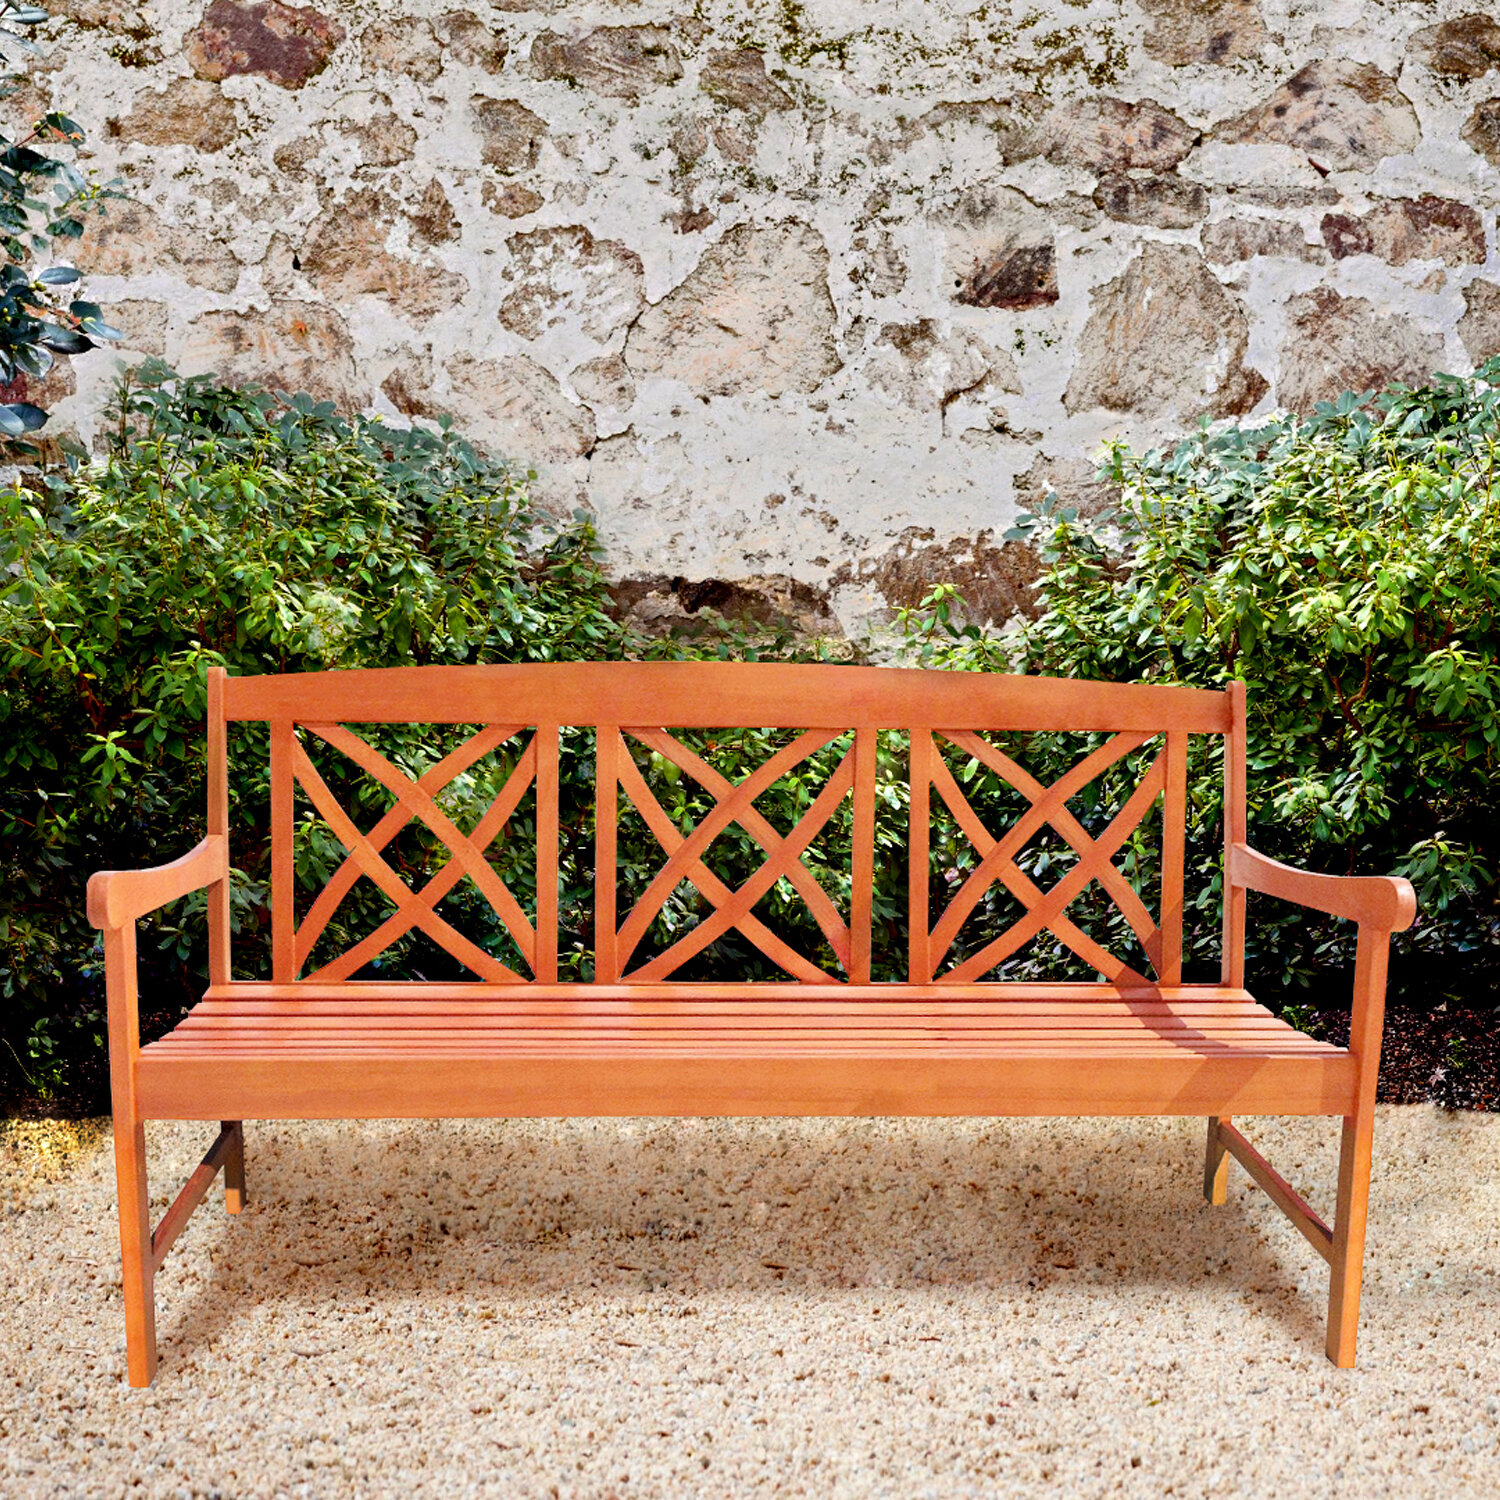 Phenomenal Avoca Wood Garden Bench Gmtry Best Dining Table And Chair Ideas Images Gmtryco